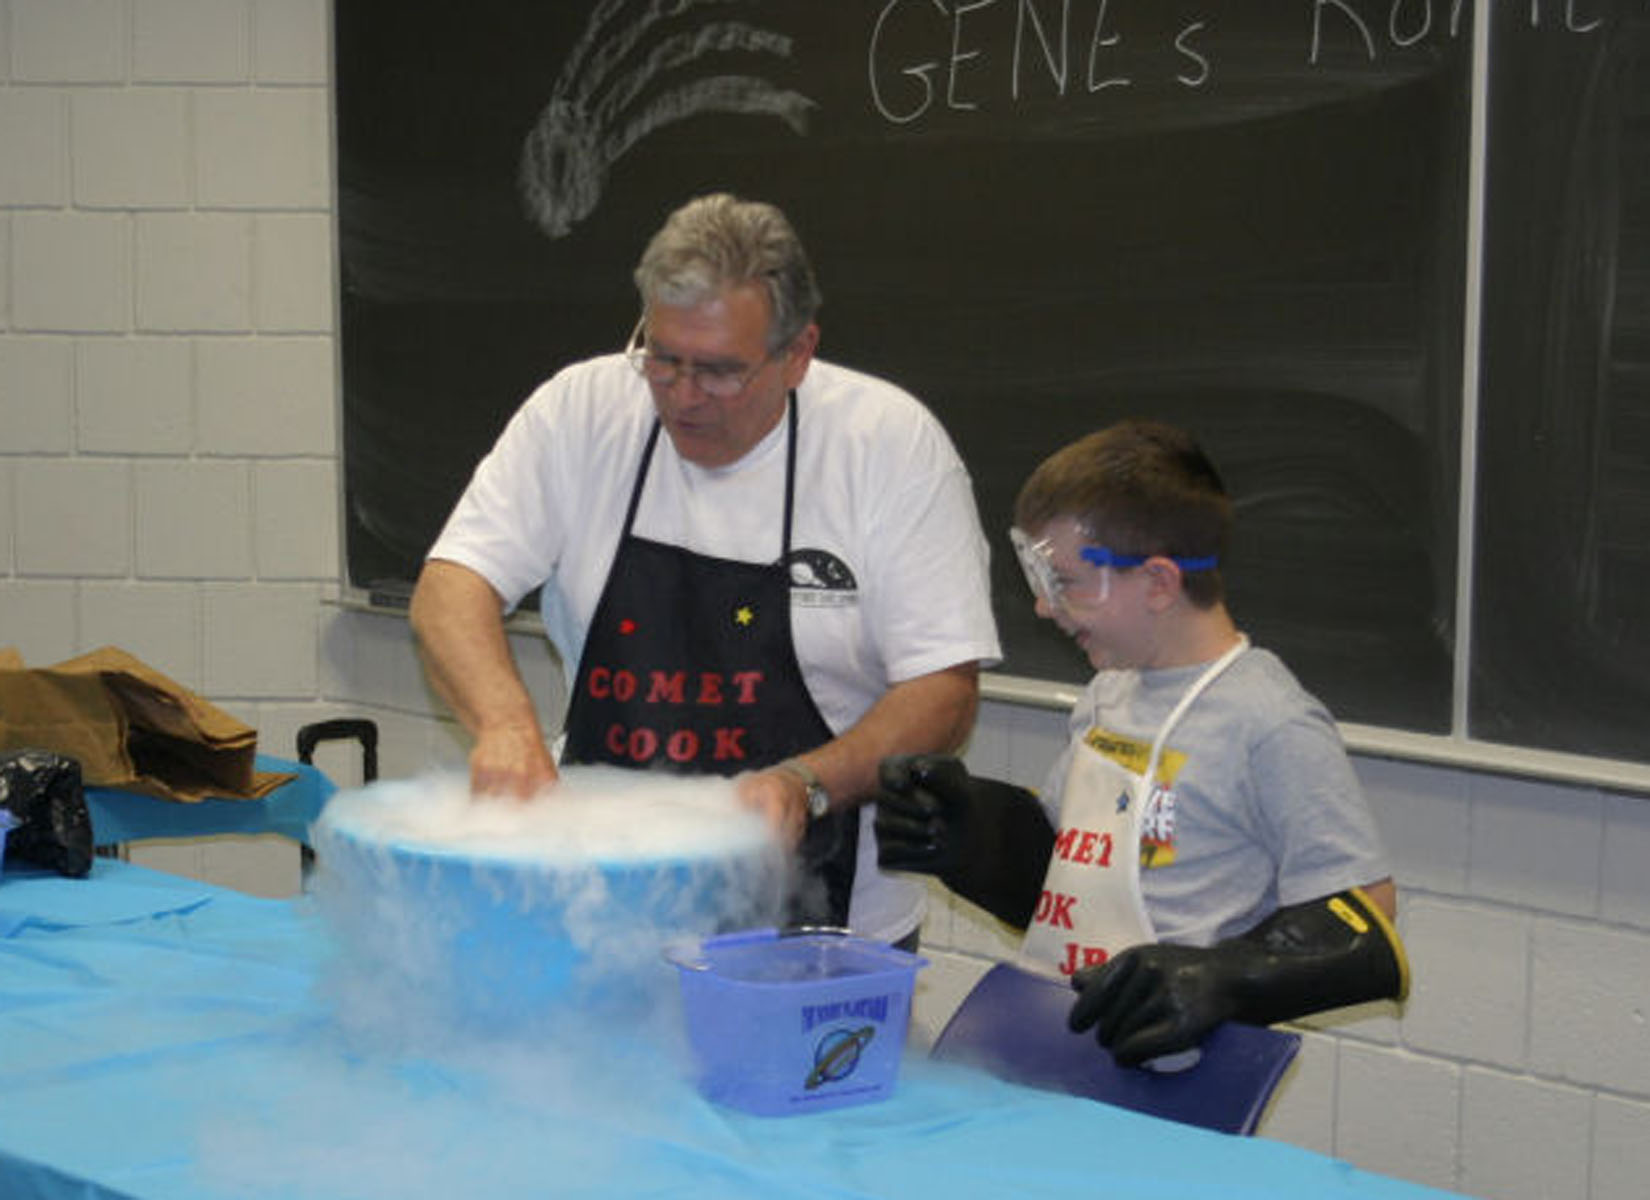 Cook Up a Comet (Astronomy Activity)